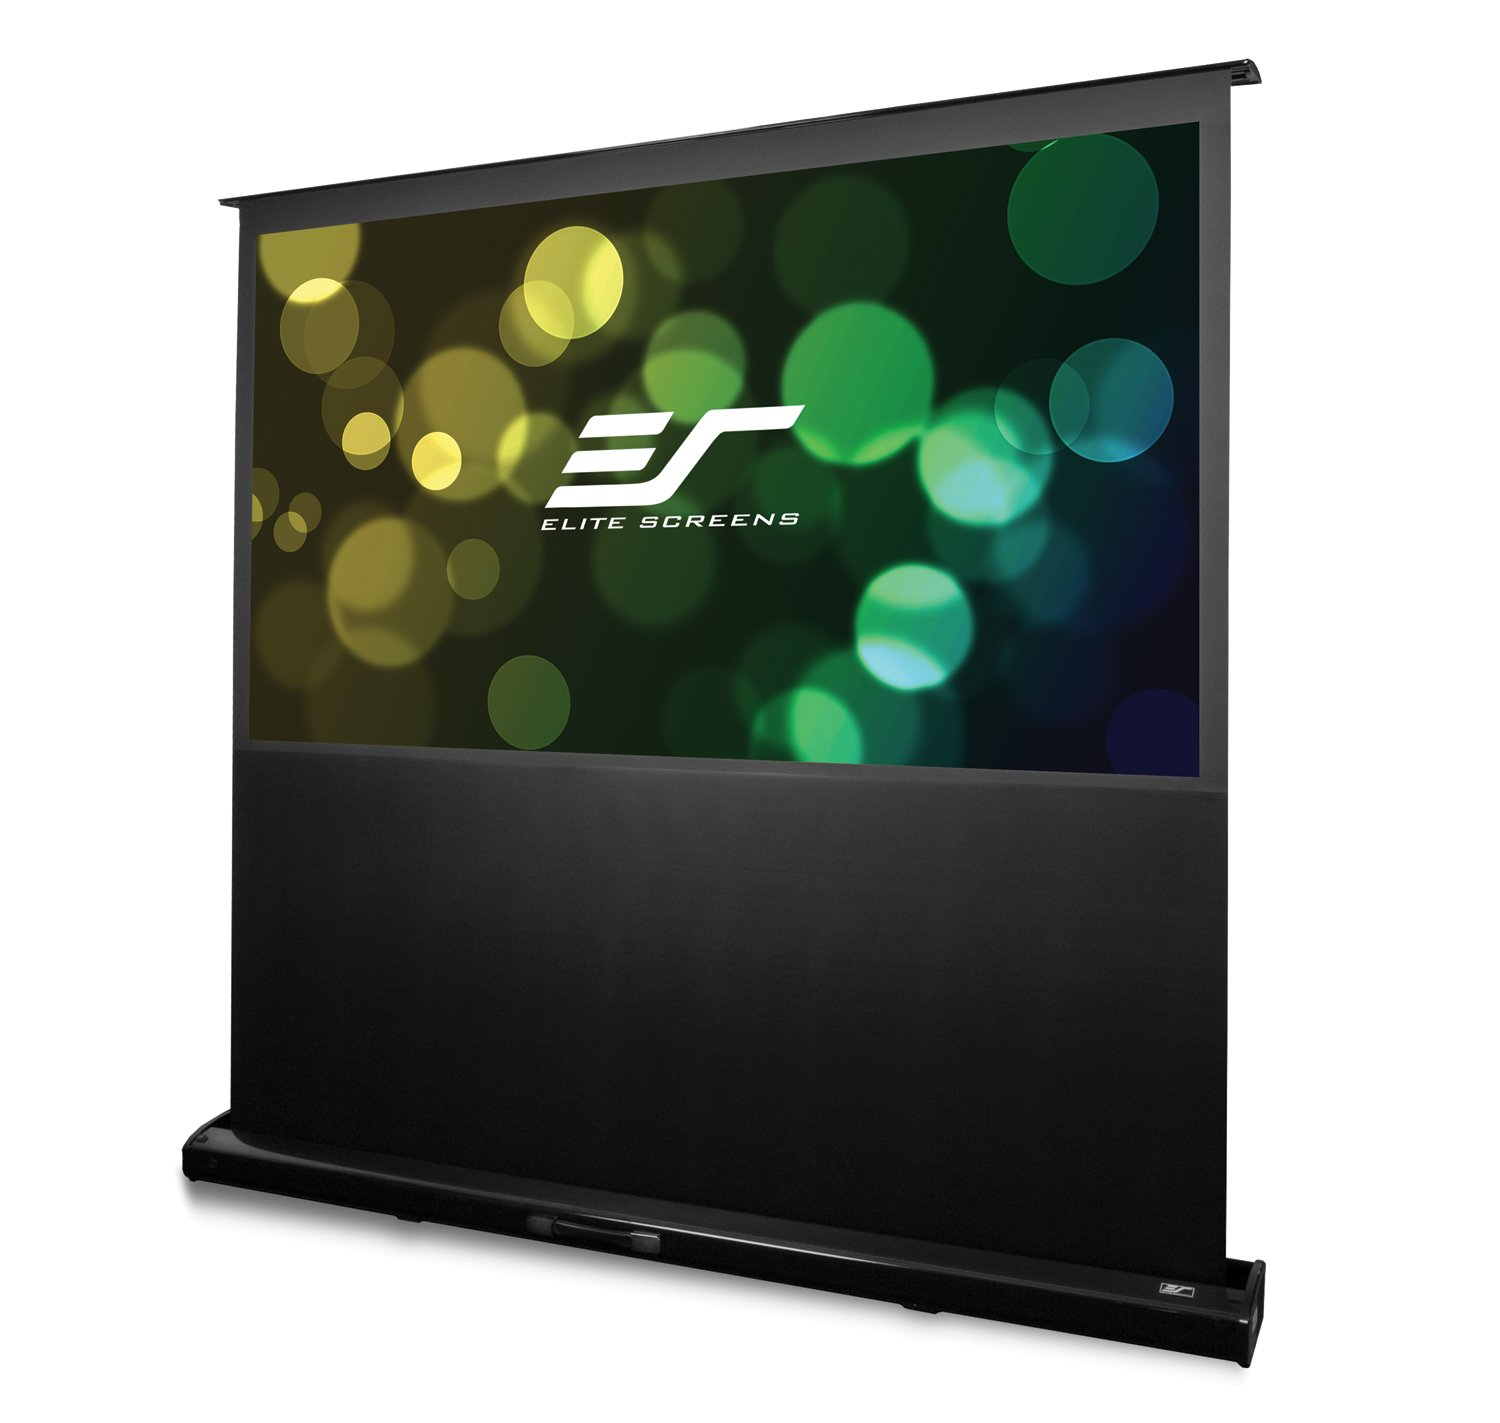 Elite Screens FTE80H Kestrel Tension Tab-Tensioned Floor-Rising Portable Electric Projector Screen, Black Piano Gloss Housing, 80-Inch Diag. 16:9 Elitescreens